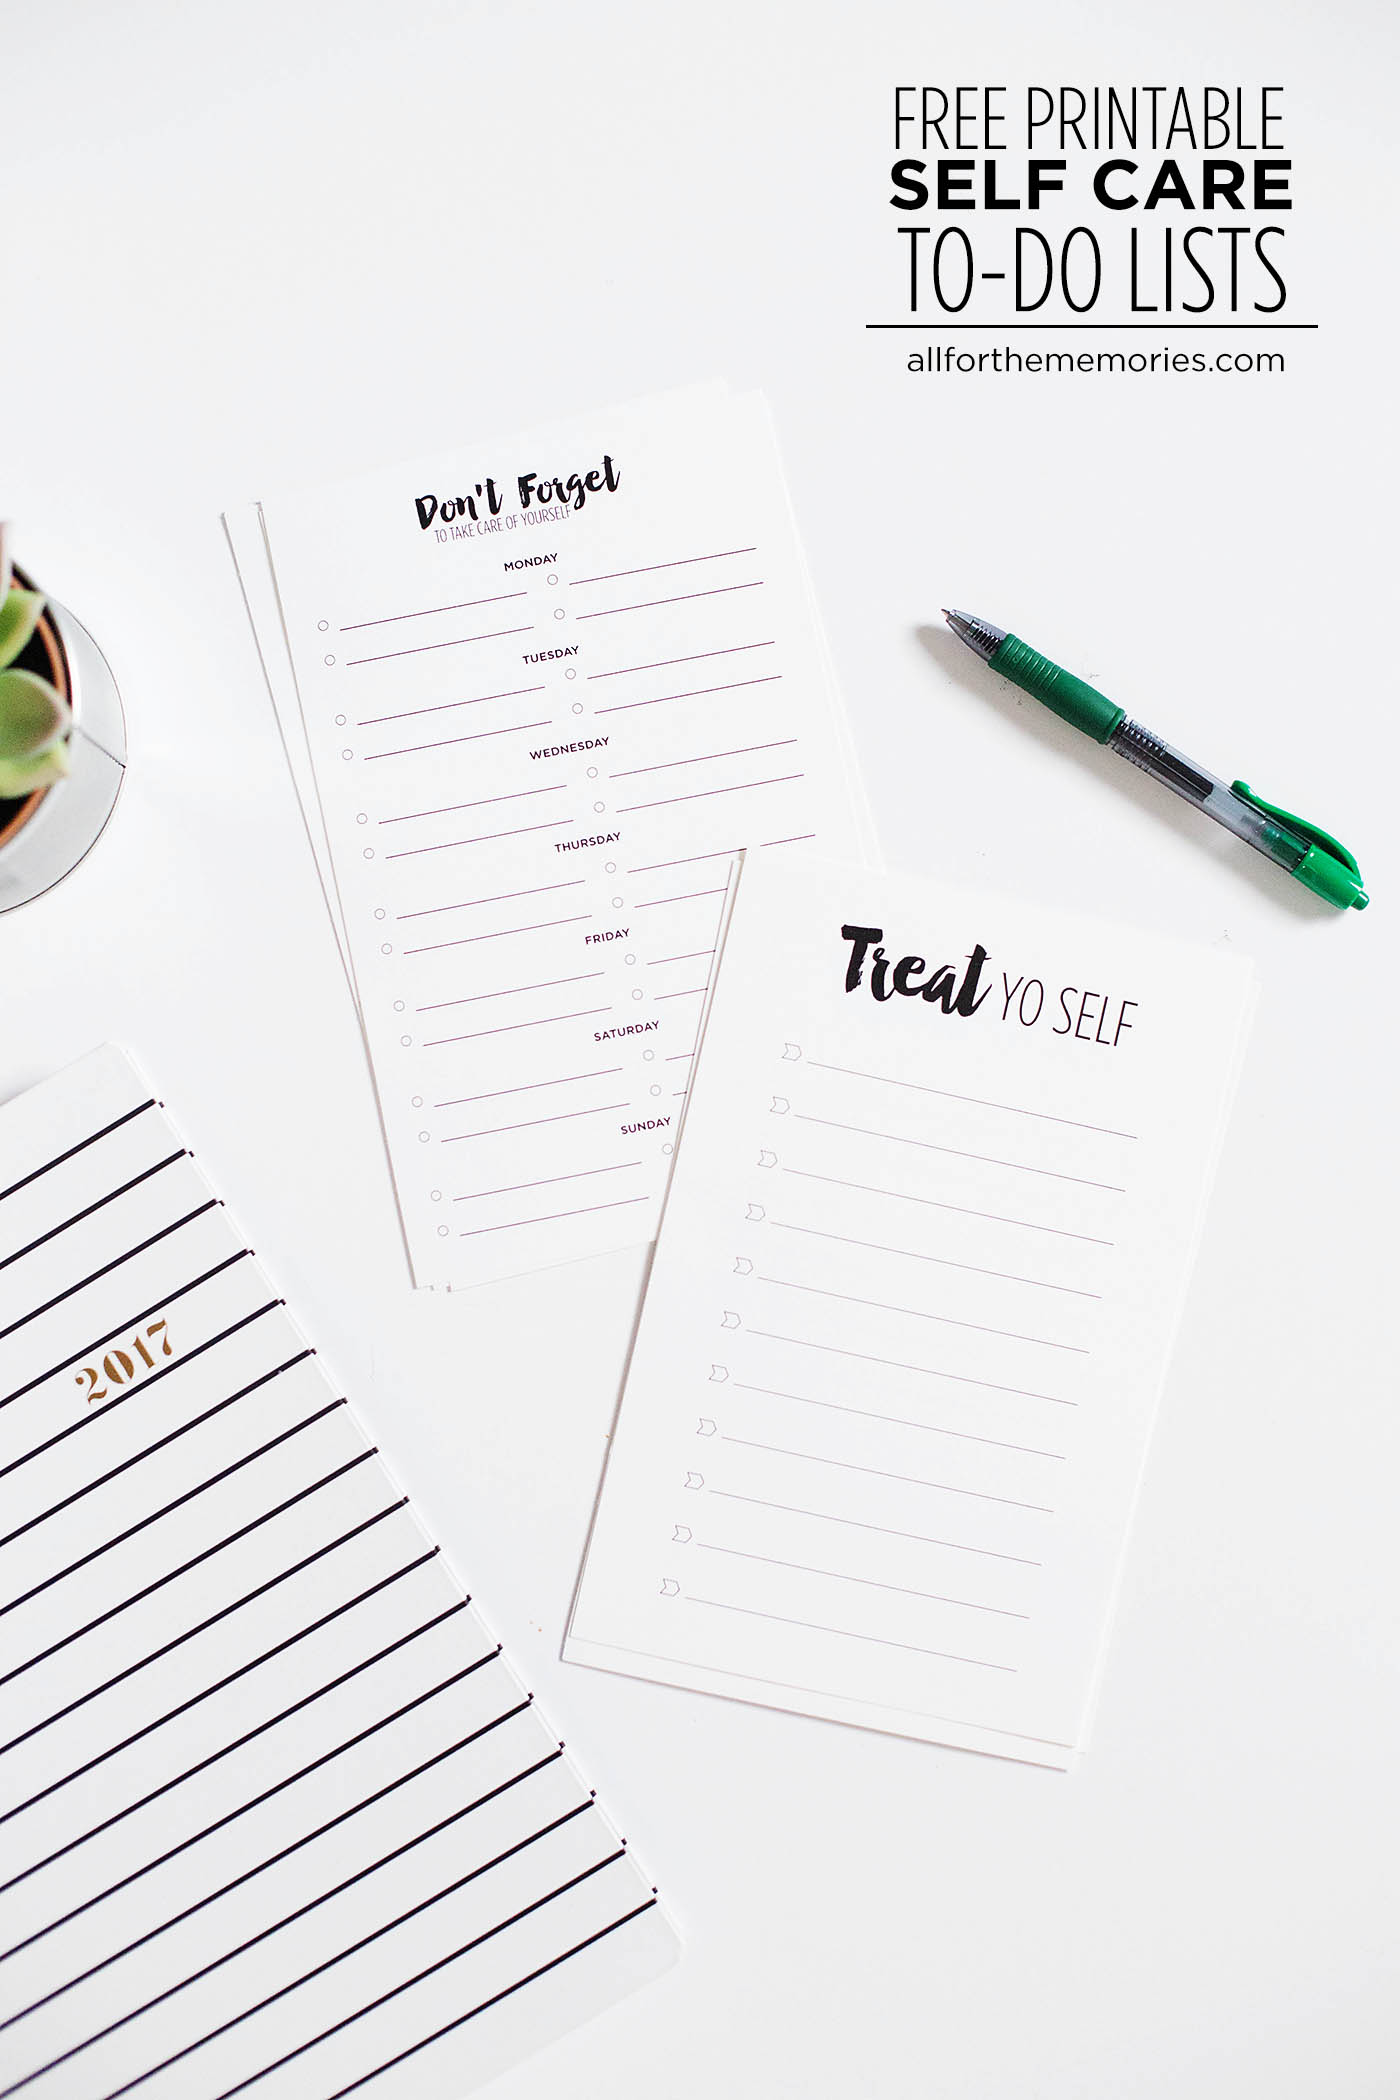 Free printable self care checklist